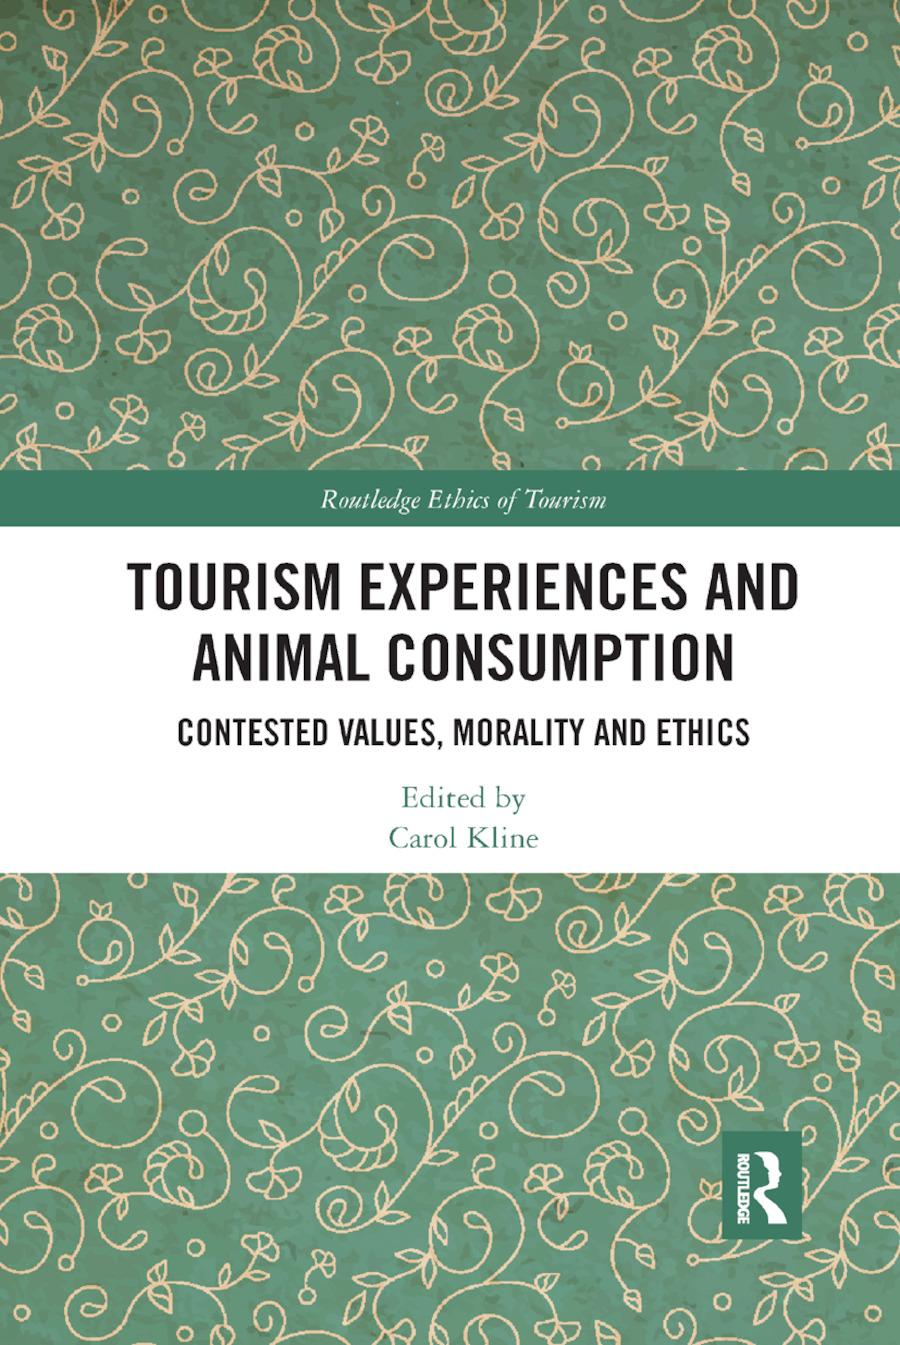 Tourism Experiences and Animal Consumption: Contested Values, Morality and Ethics book cover